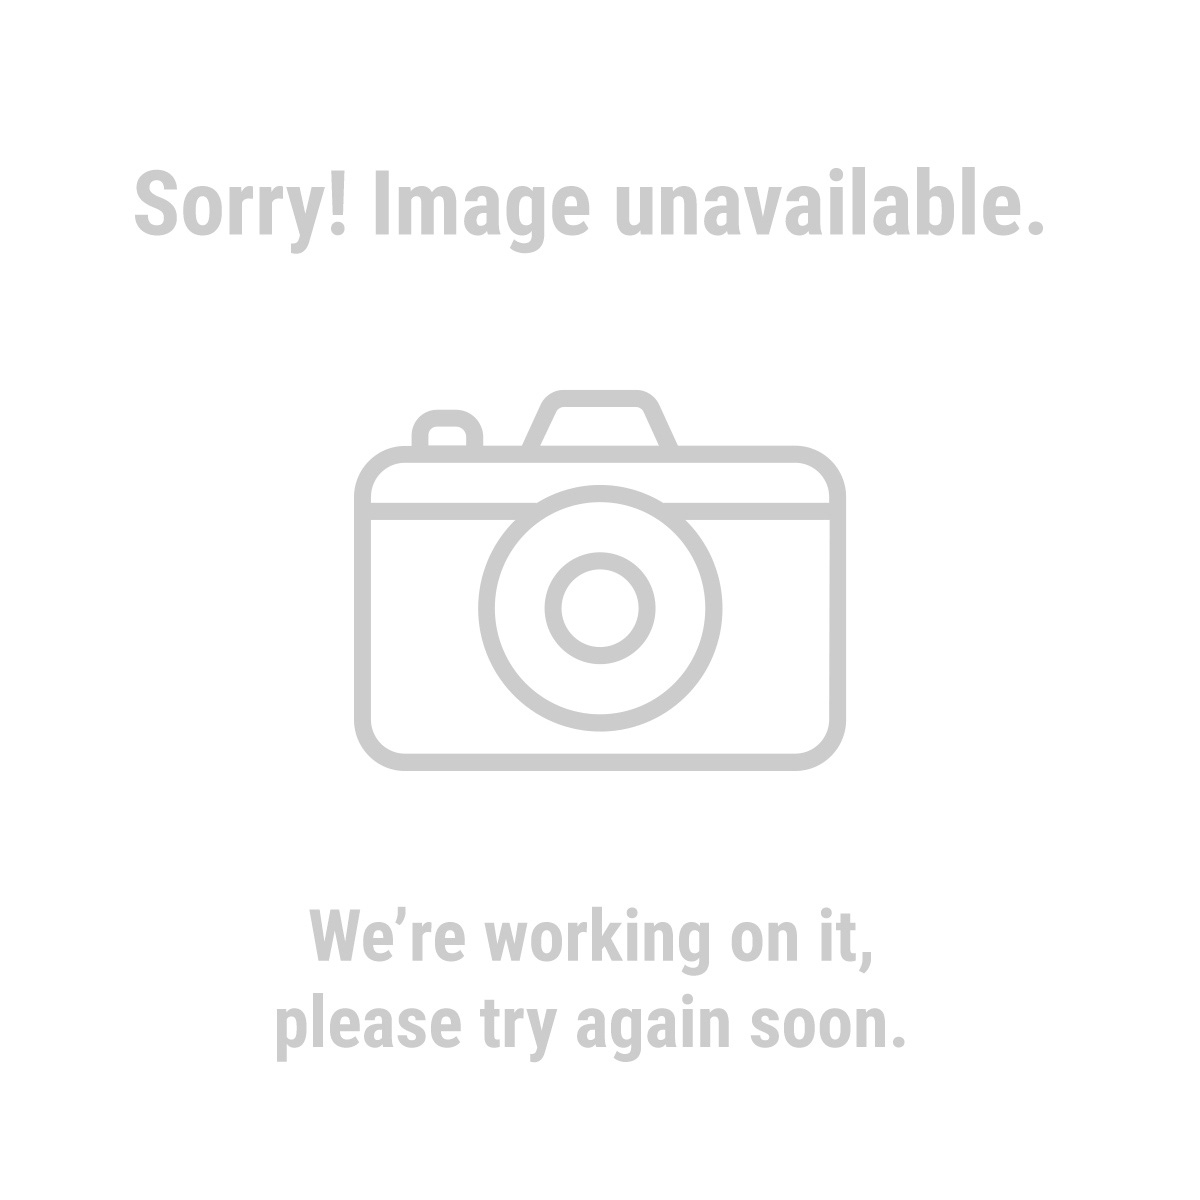 Drill Master 34627 60 Piece Titanium Nitride Coated Numbered Drill Bit Set